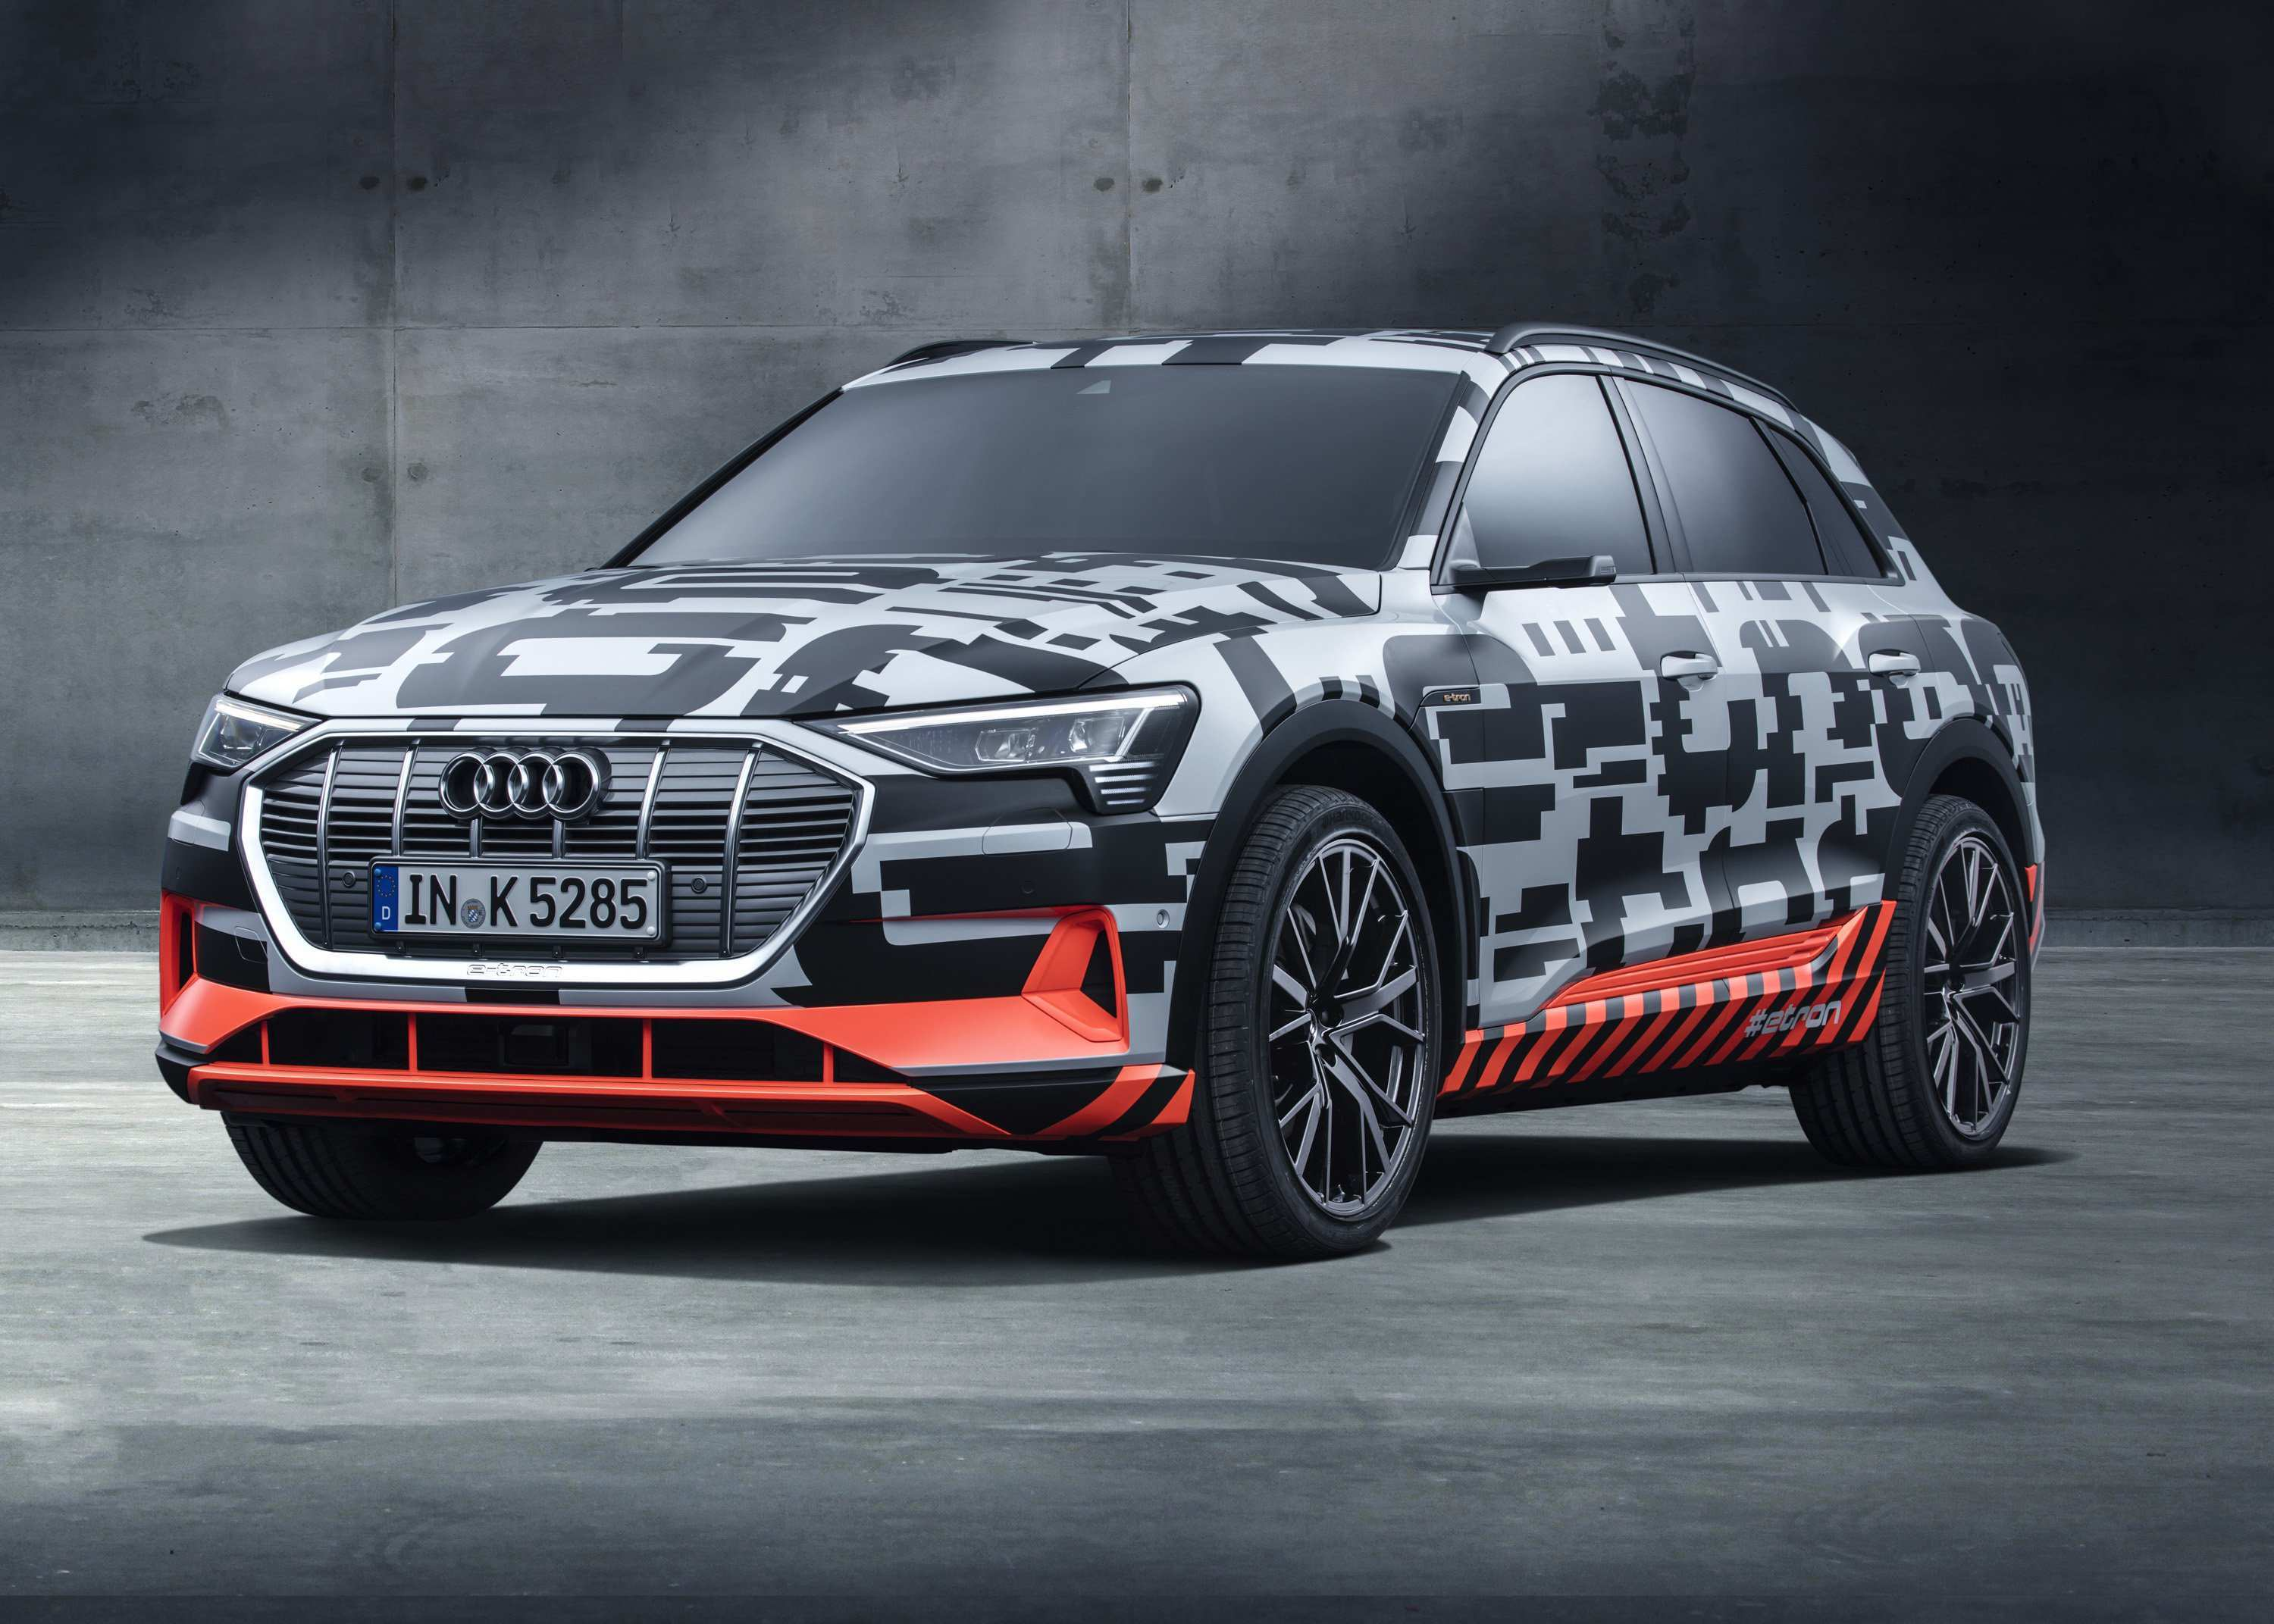 76 Great 2019 Audi E Tron Quattro Spy Shoot by 2019 Audi E Tron Quattro